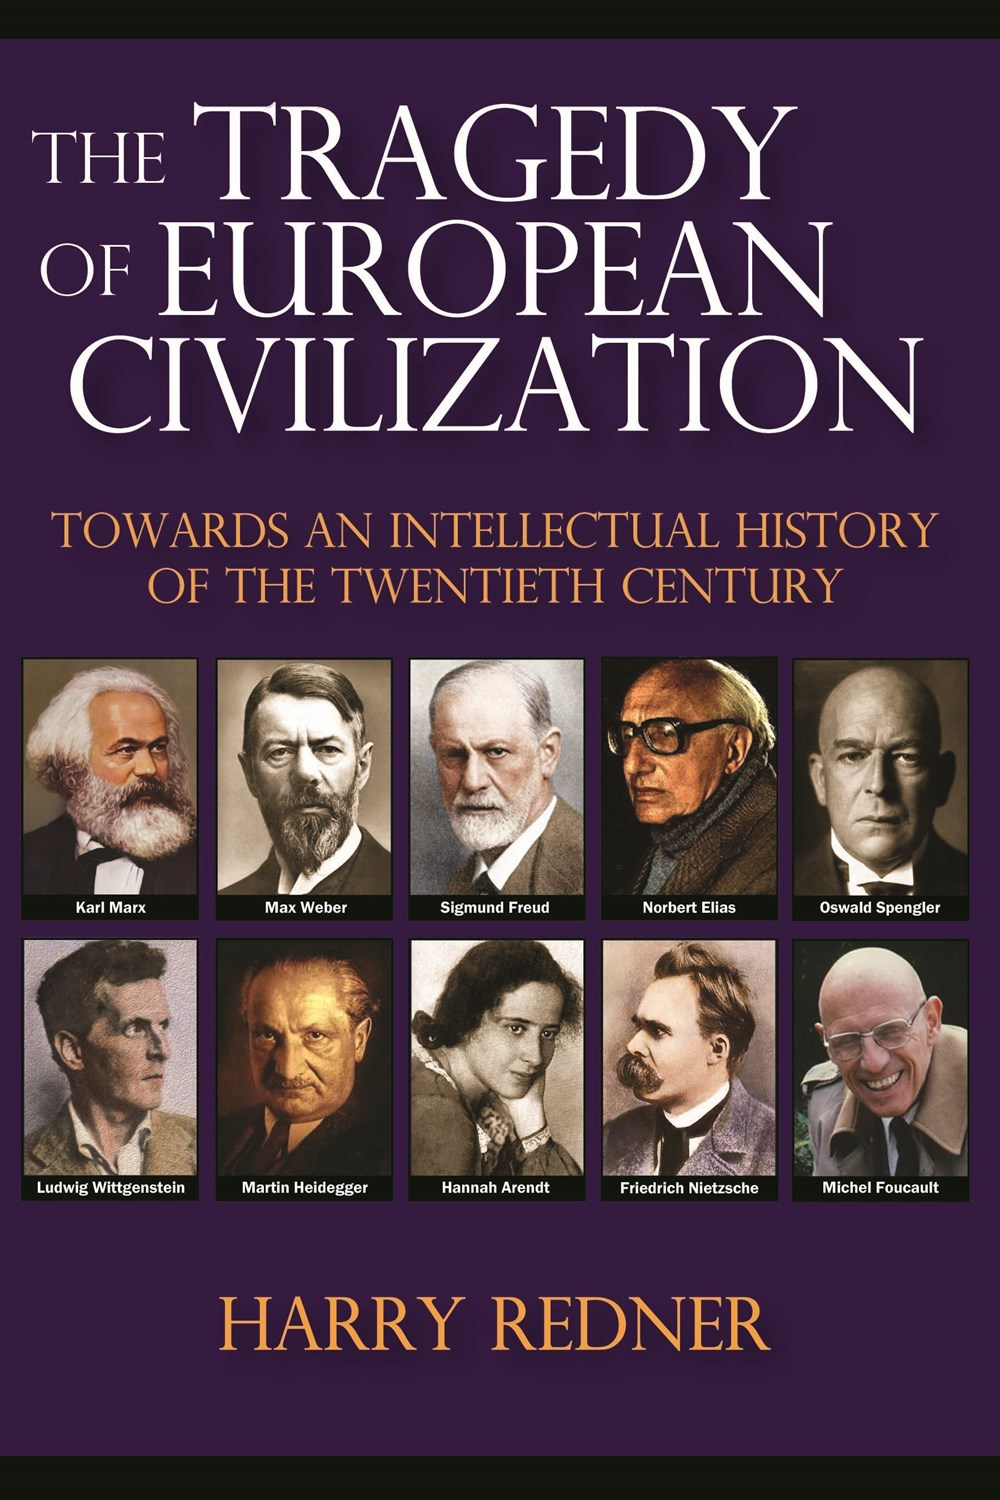 The Tragedy of European Civilization:  Towards an Intellectual History of the Twentieth Century Harry Redner